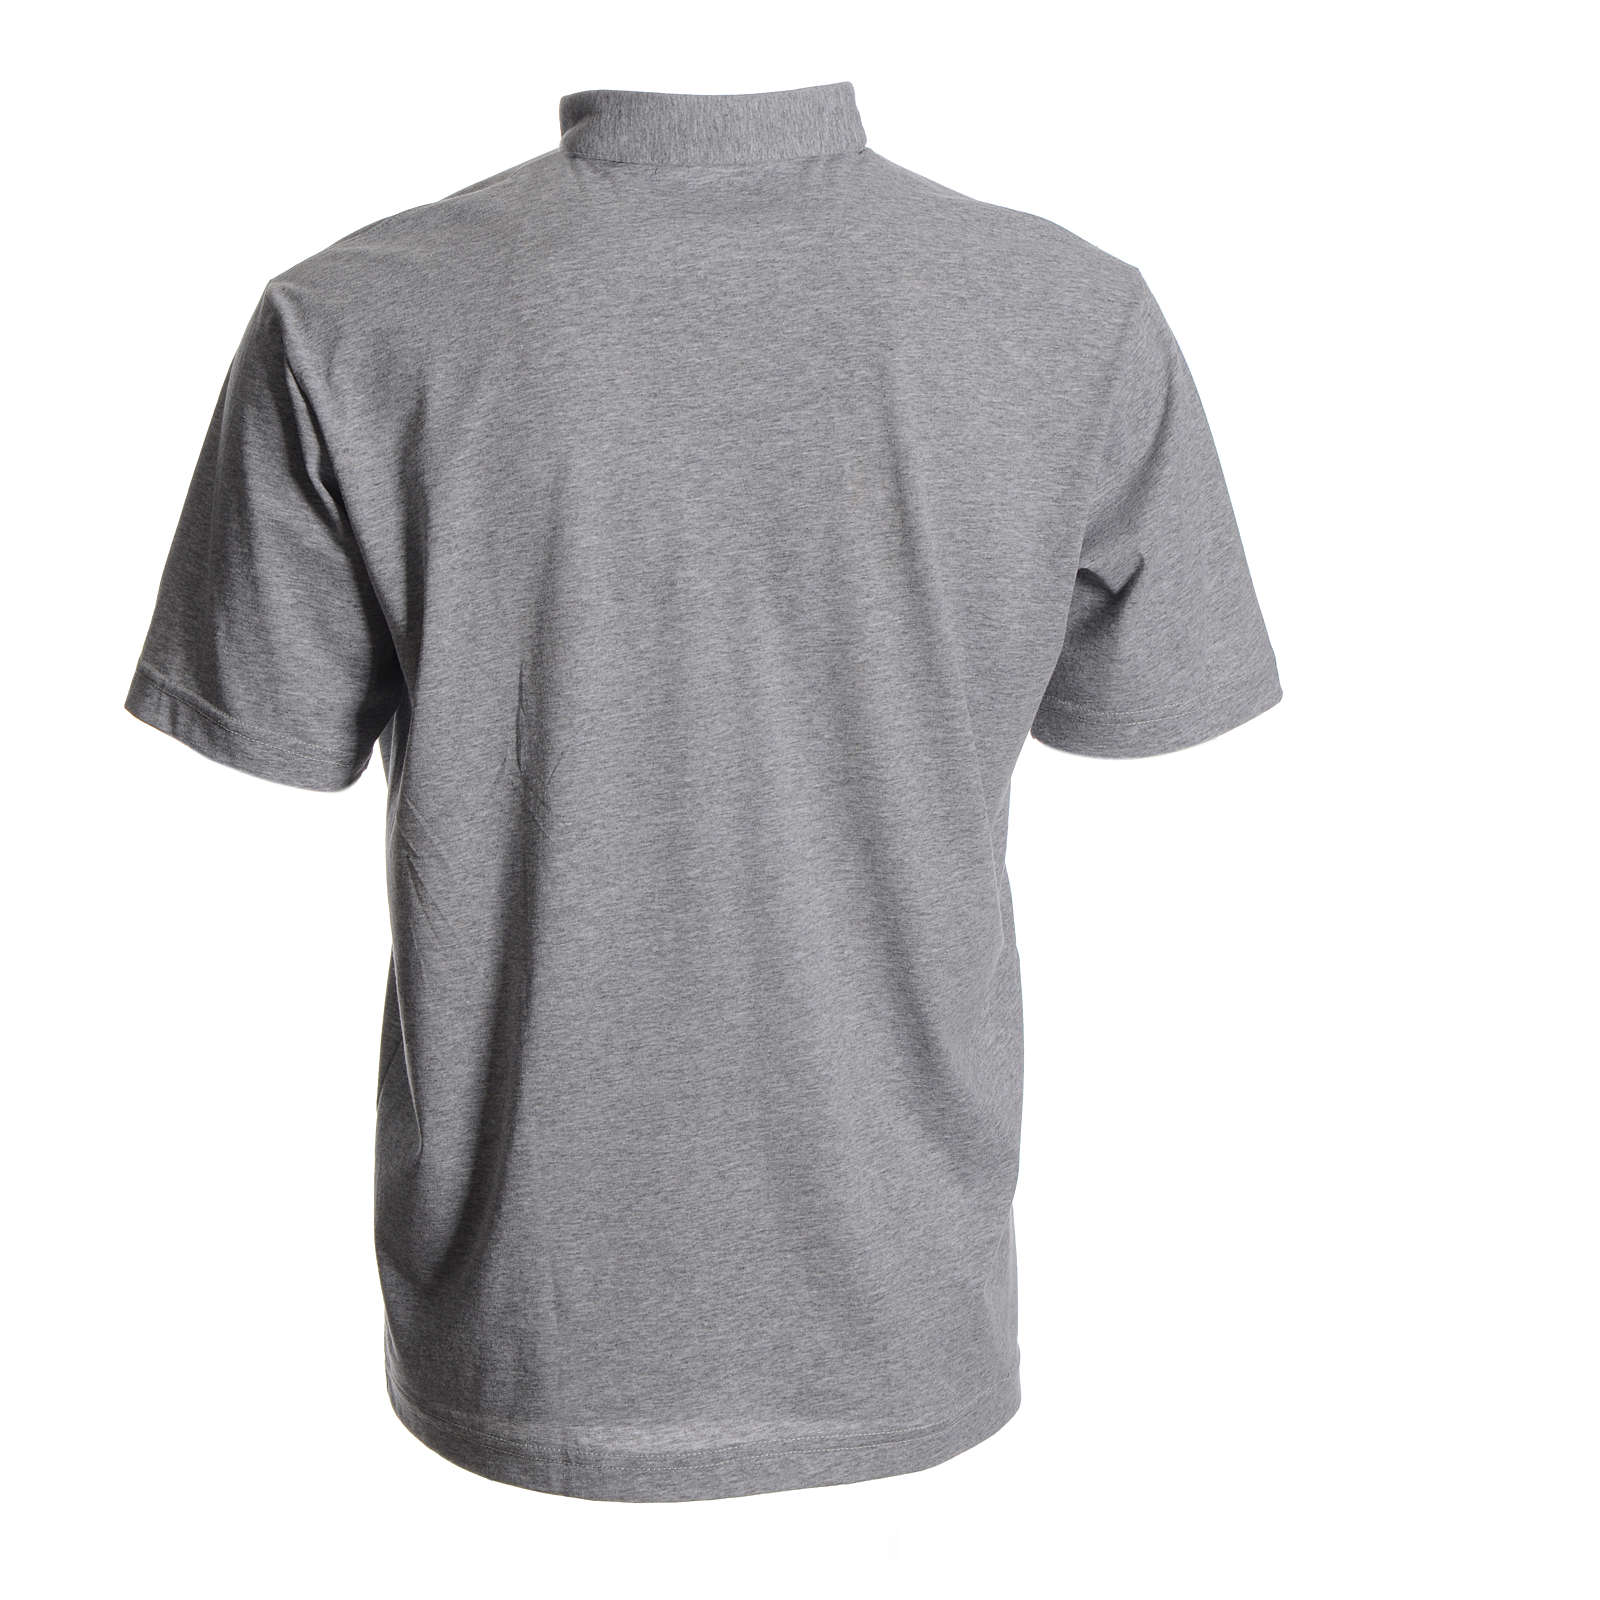 Polo camiseta clergy gris 100% algodón 4